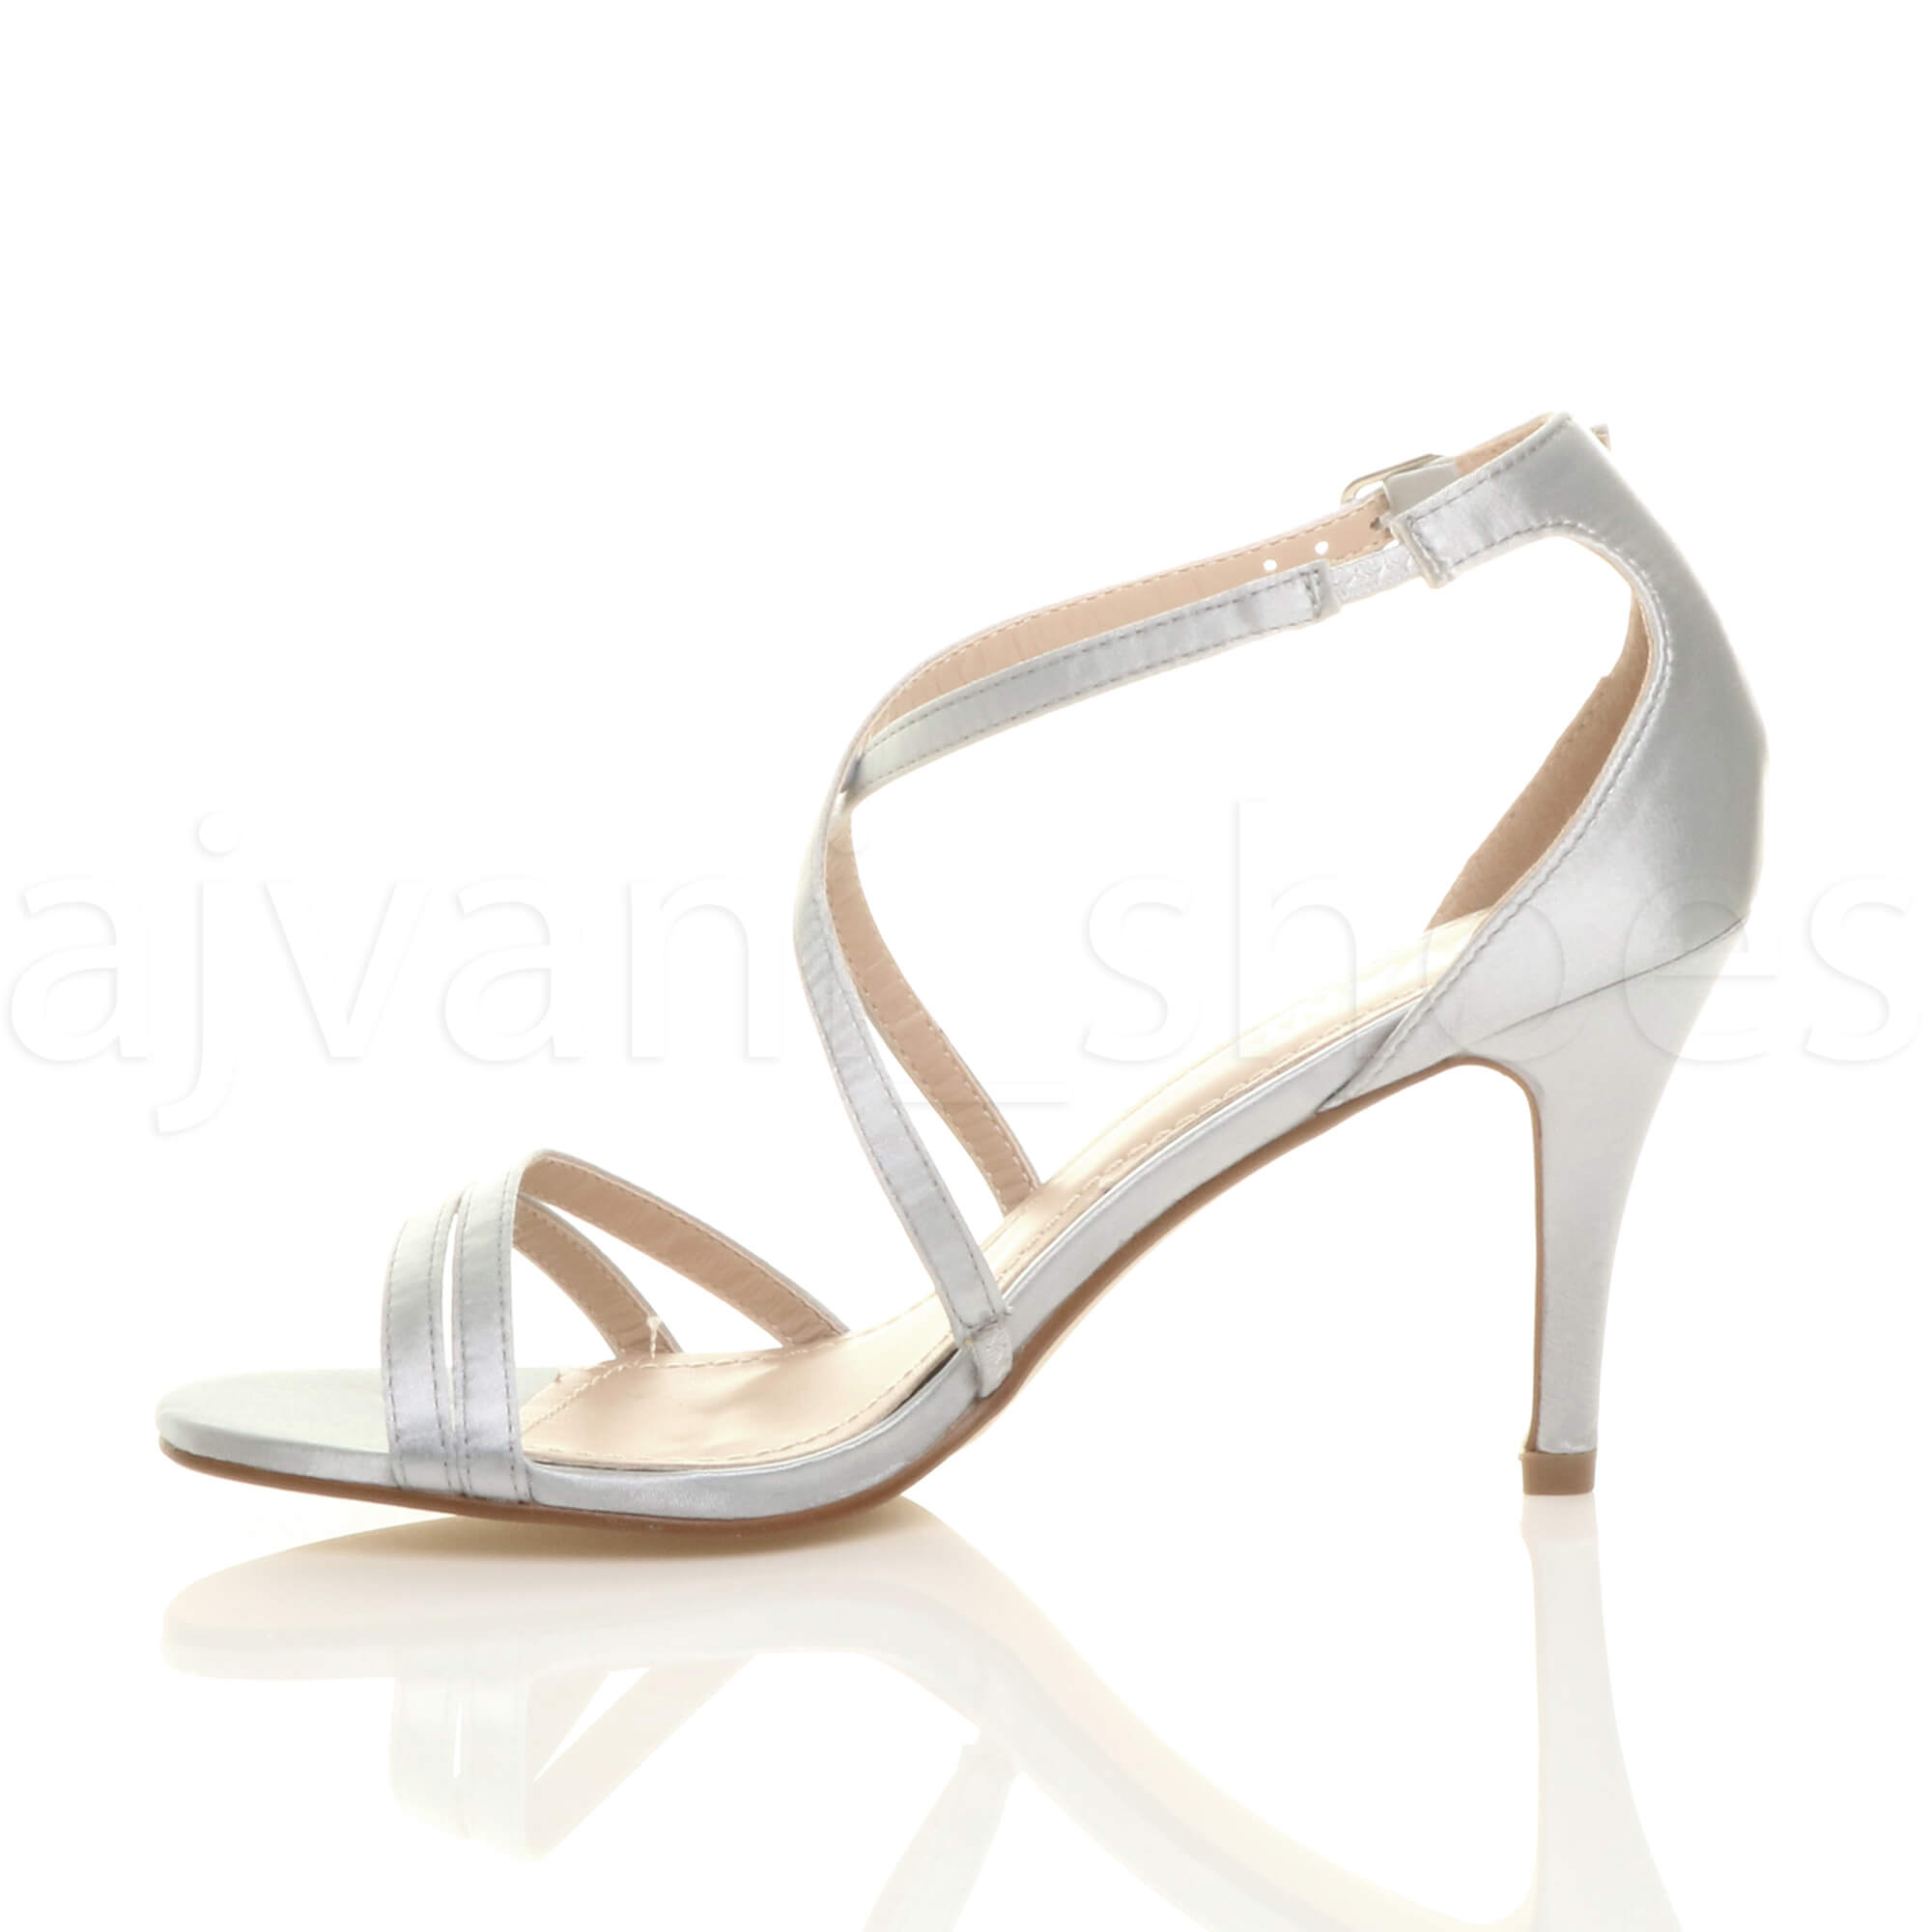 WOMENS-LADIES-MID-HIGH-HEEL-STRAPPY-CROSSOVER-WEDDING-PROM-SANDALS-SHOES-SIZE thumbnail 158